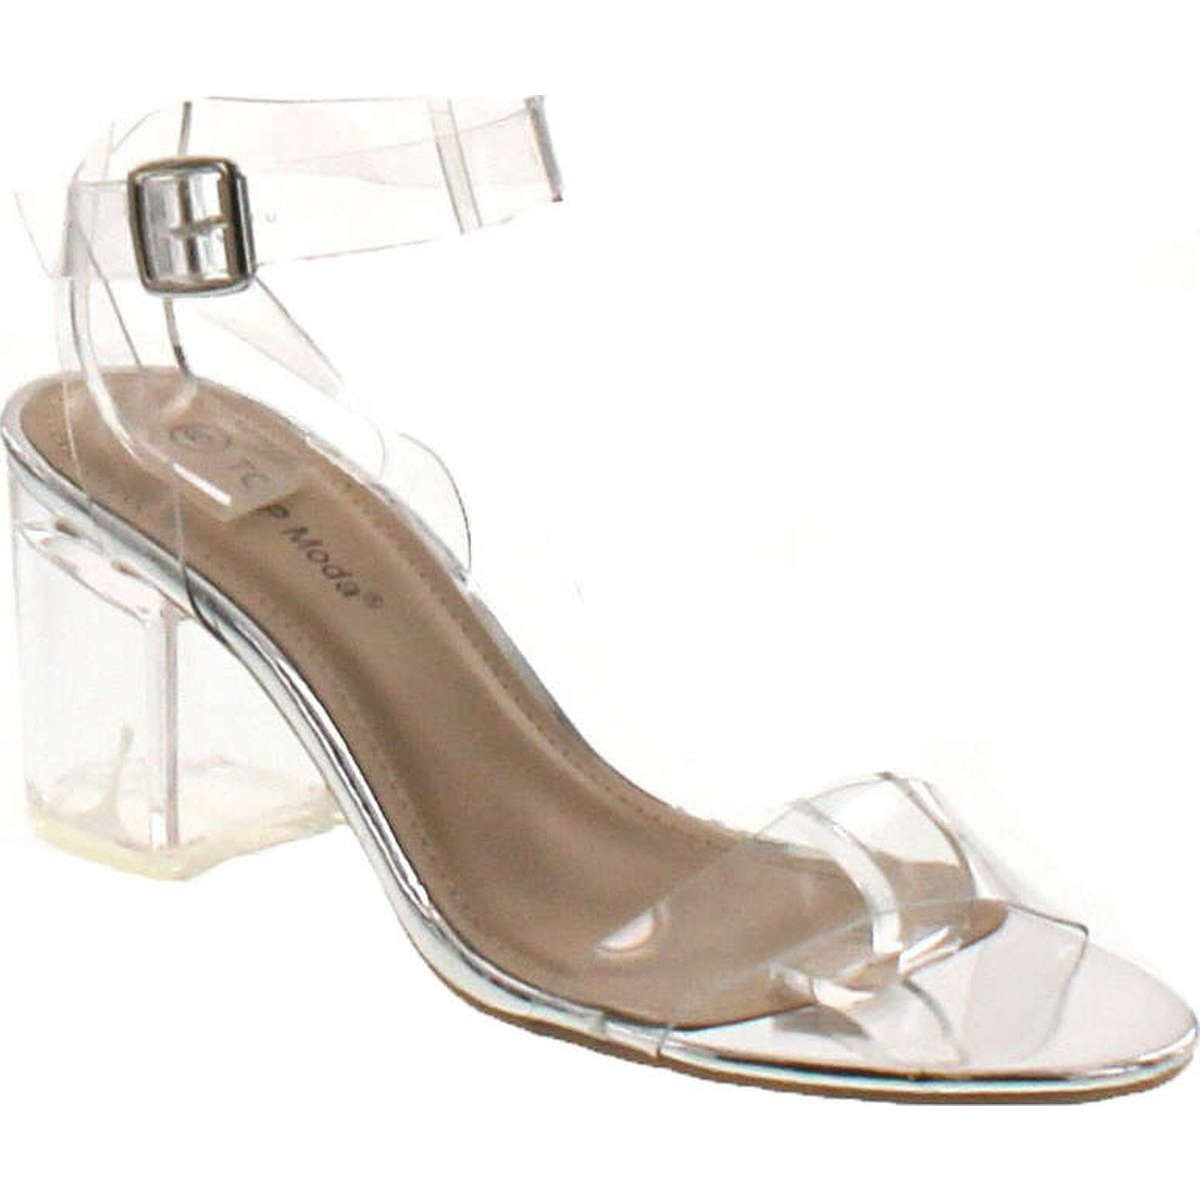 Vintage Style Shoes, Vintage Inspired Shoes TOP Moda Womens Lucite Clear Strappy Block Chunky High Heel Open Peep Toe Sandal $34.90 AT vintagedancer.com